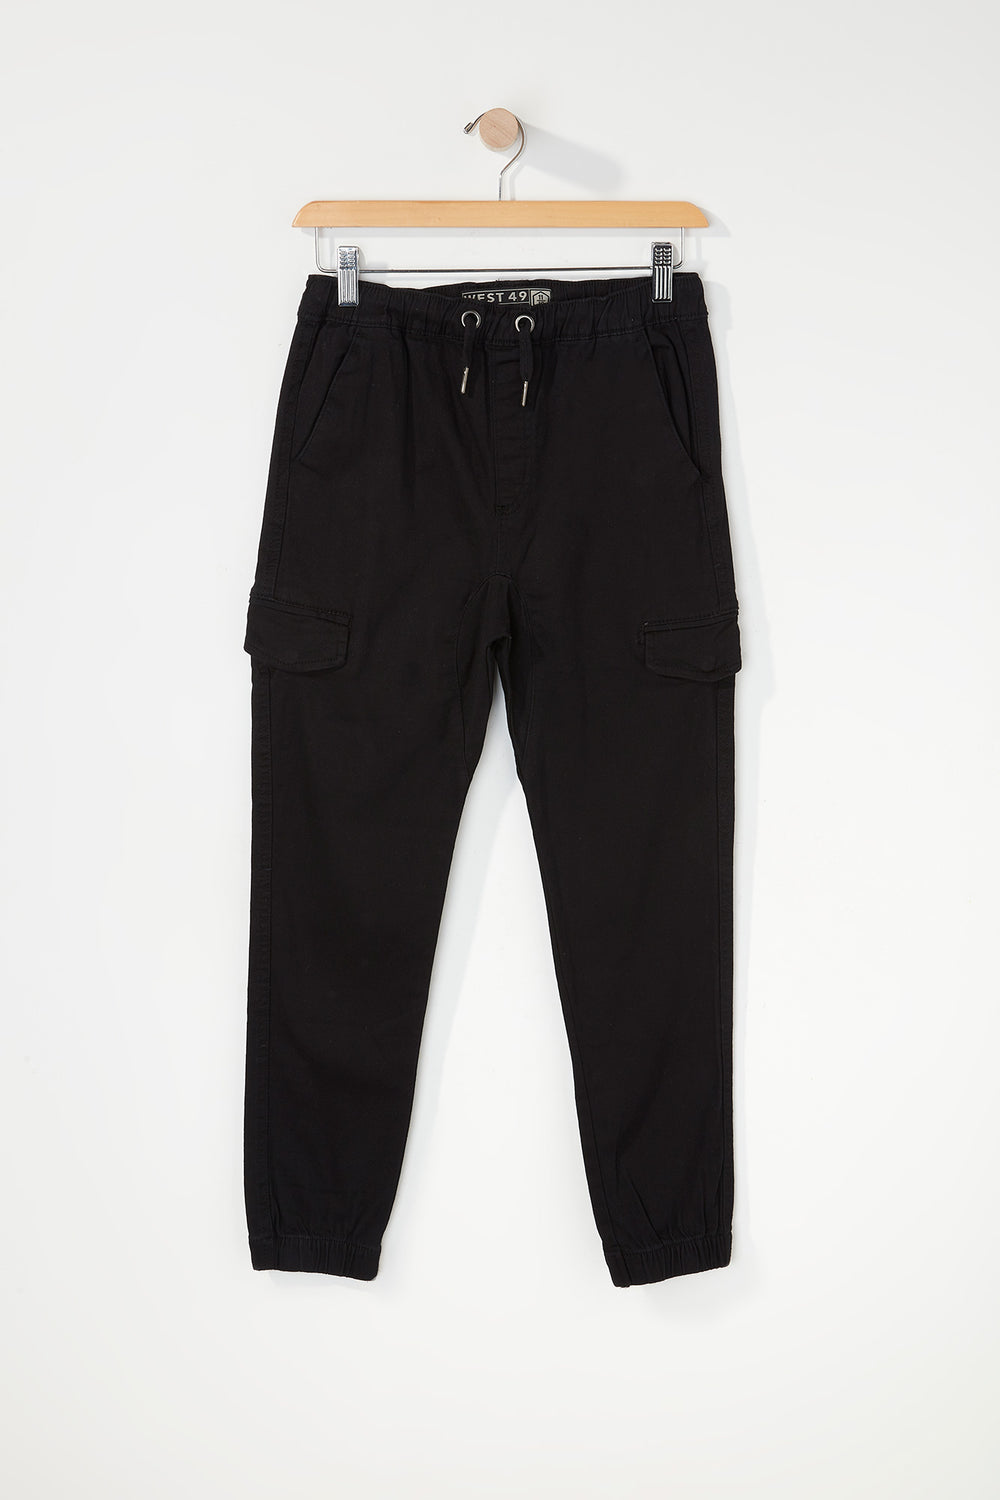 Jogger Cargo West49 Junior Noir